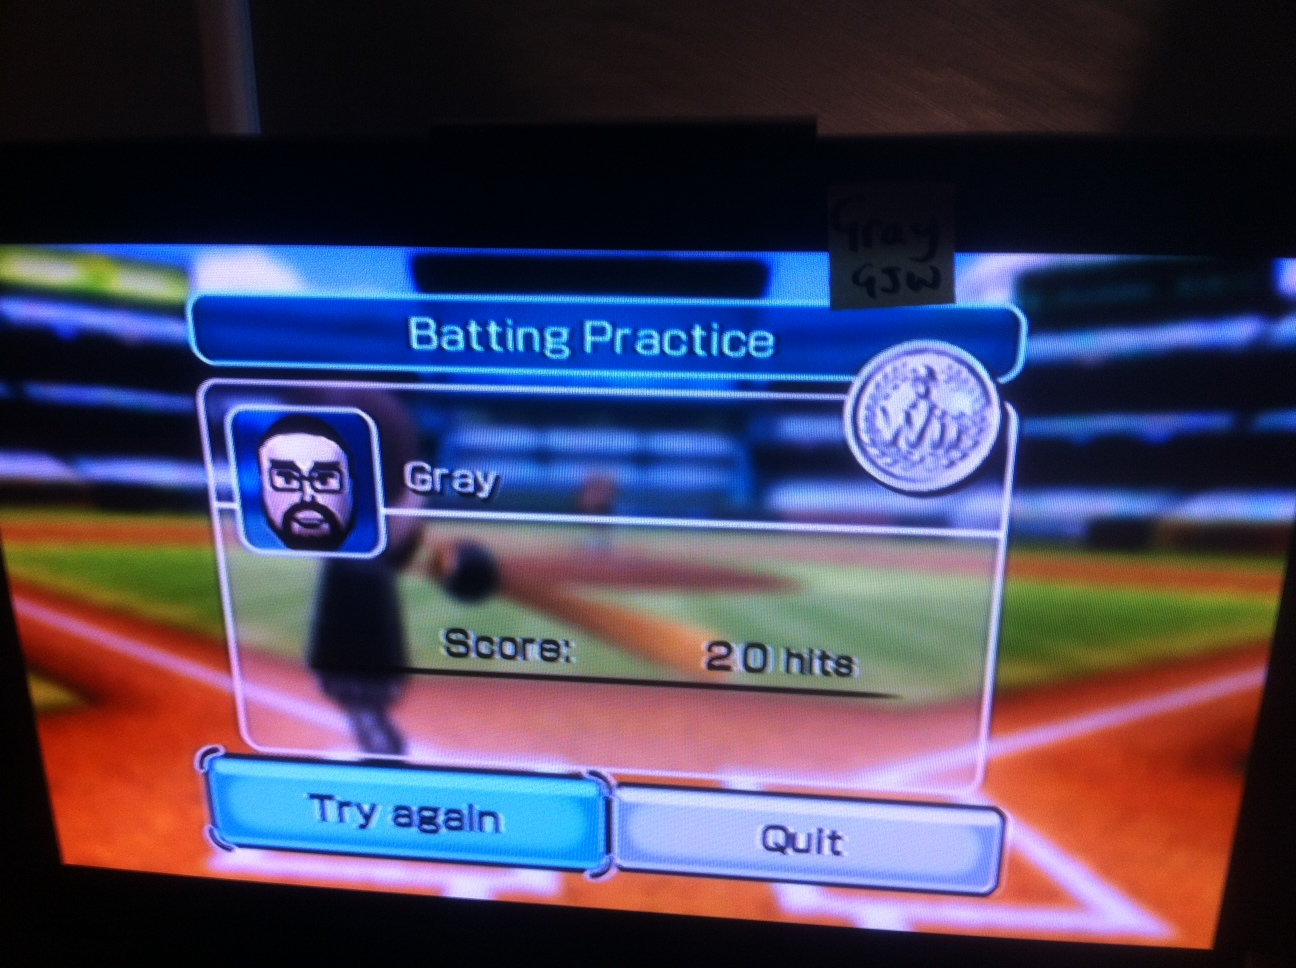 Gray: Wii Sports: Baseball [Batting Practice] (Wii) 20 points on 2014-04-25 03:40:20